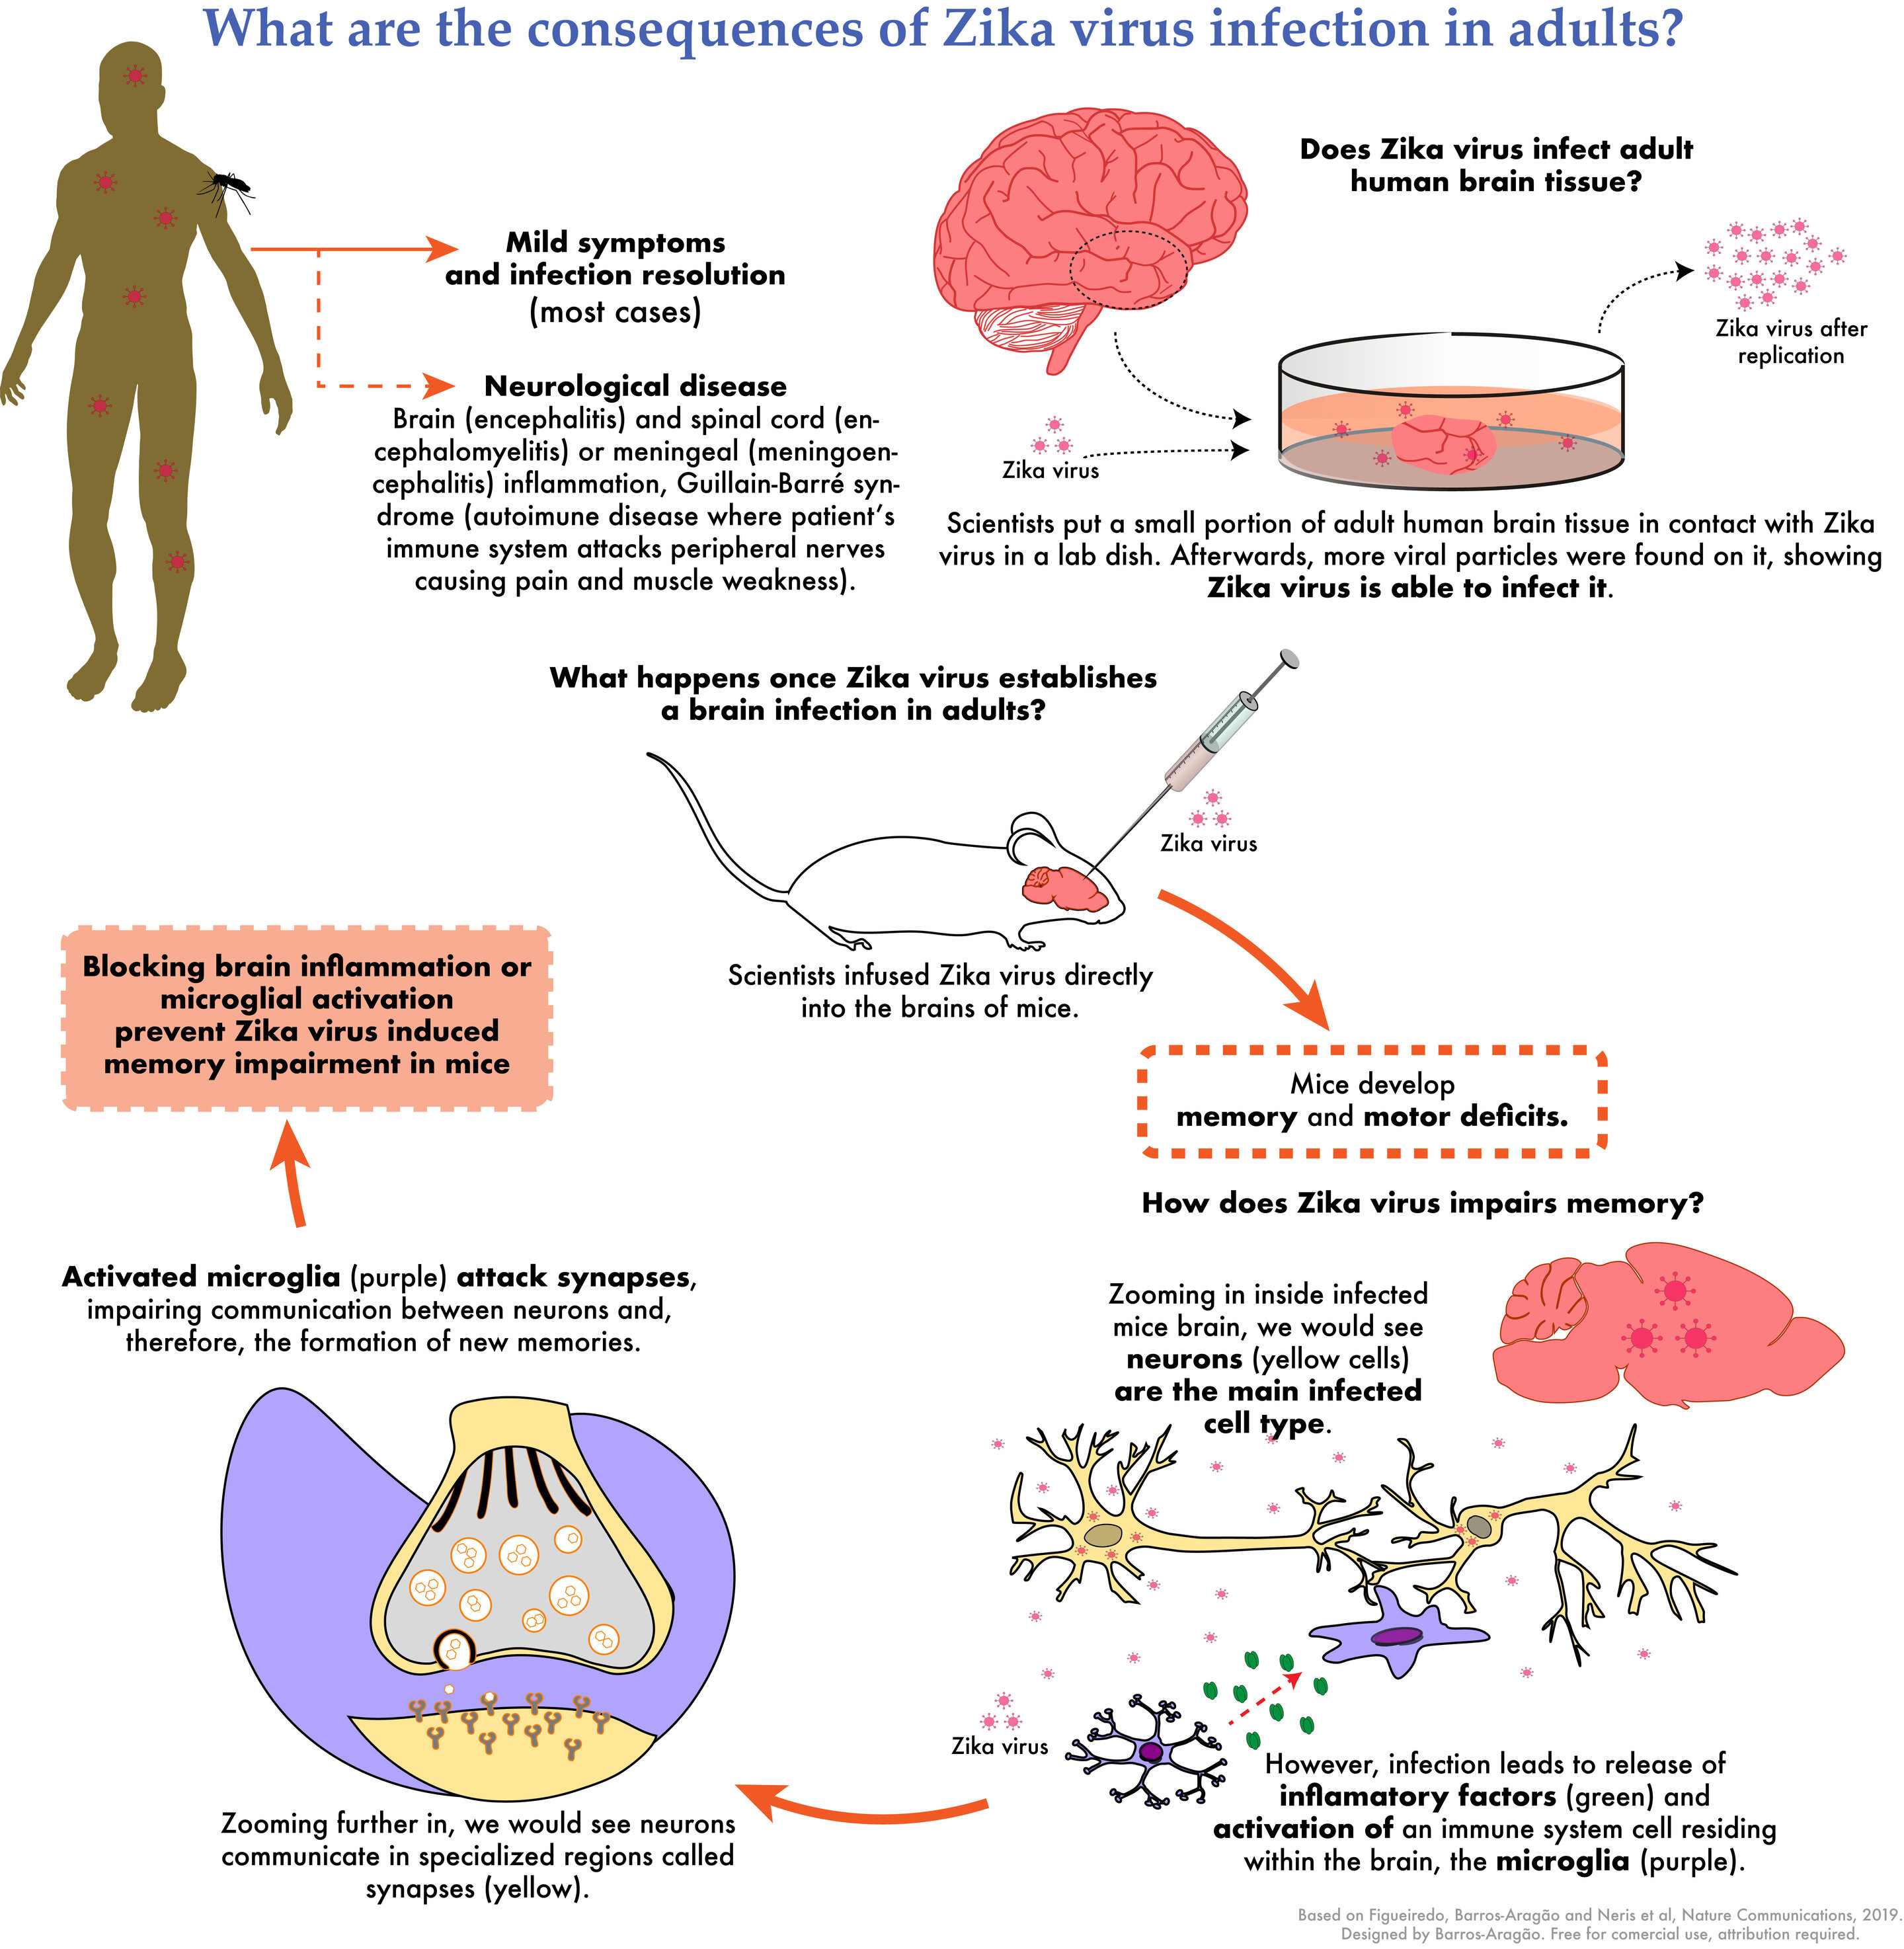 Zika virus infects the adult human brain and causes memory